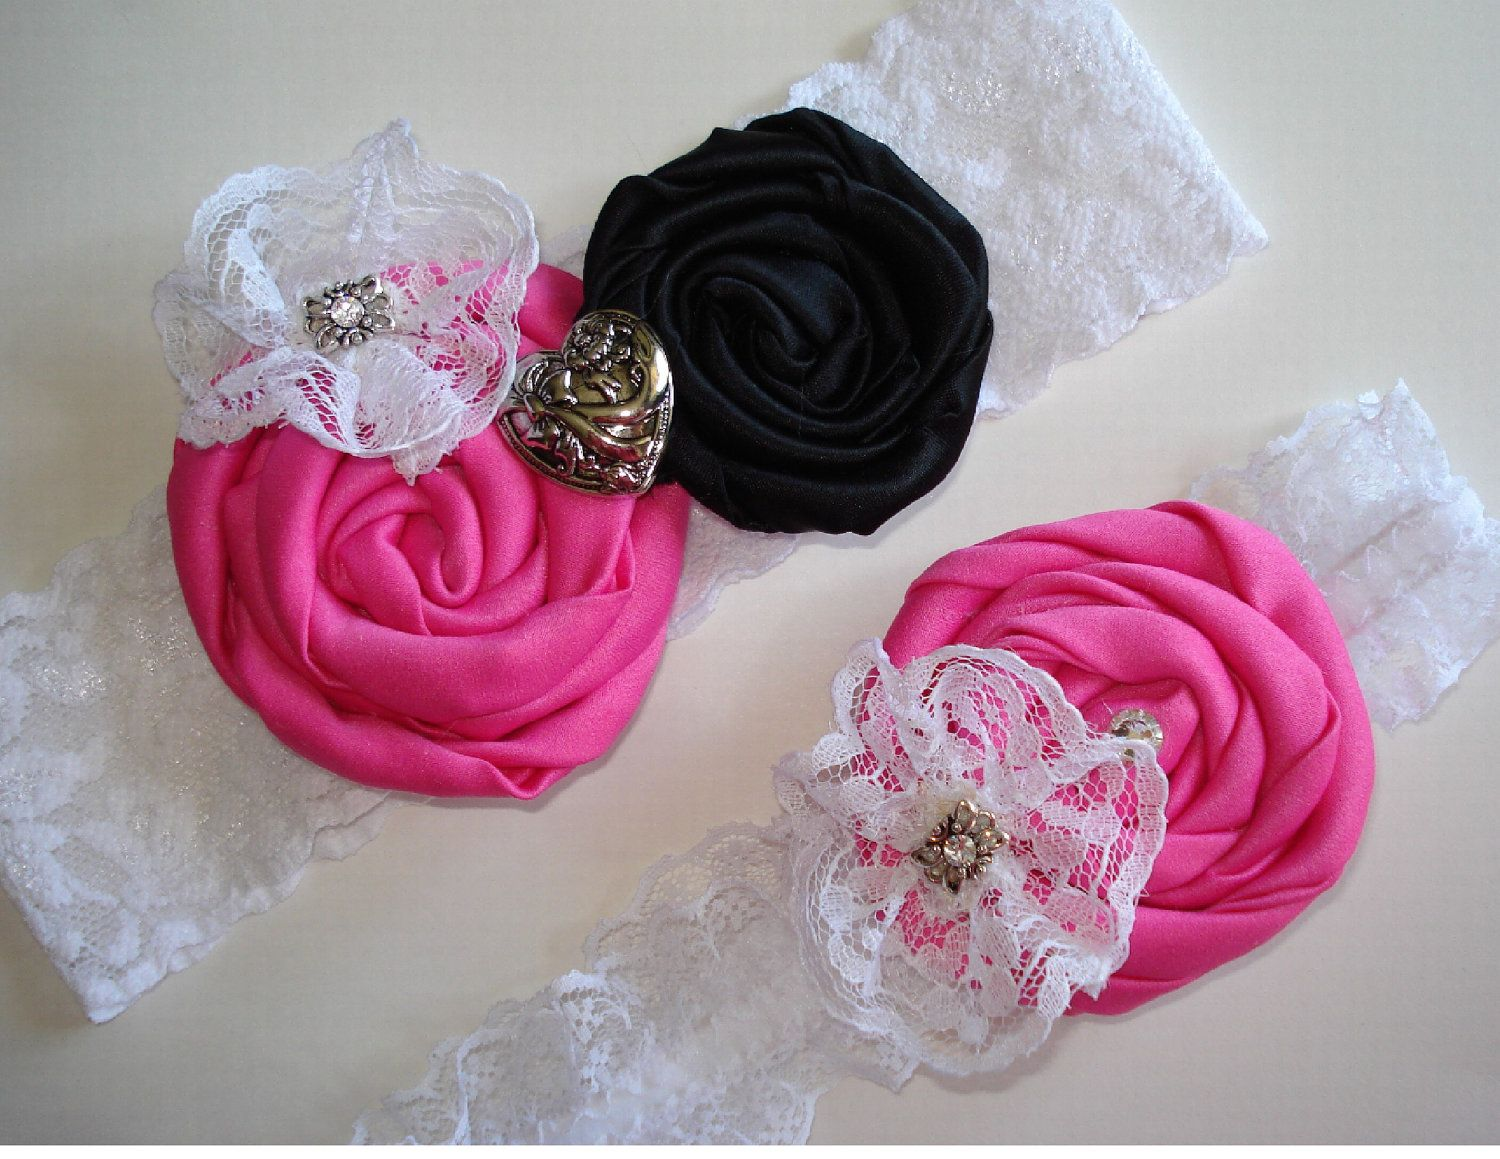 Pink and Black Rose on White Lace Wedding Garter for Bride   Pink ...